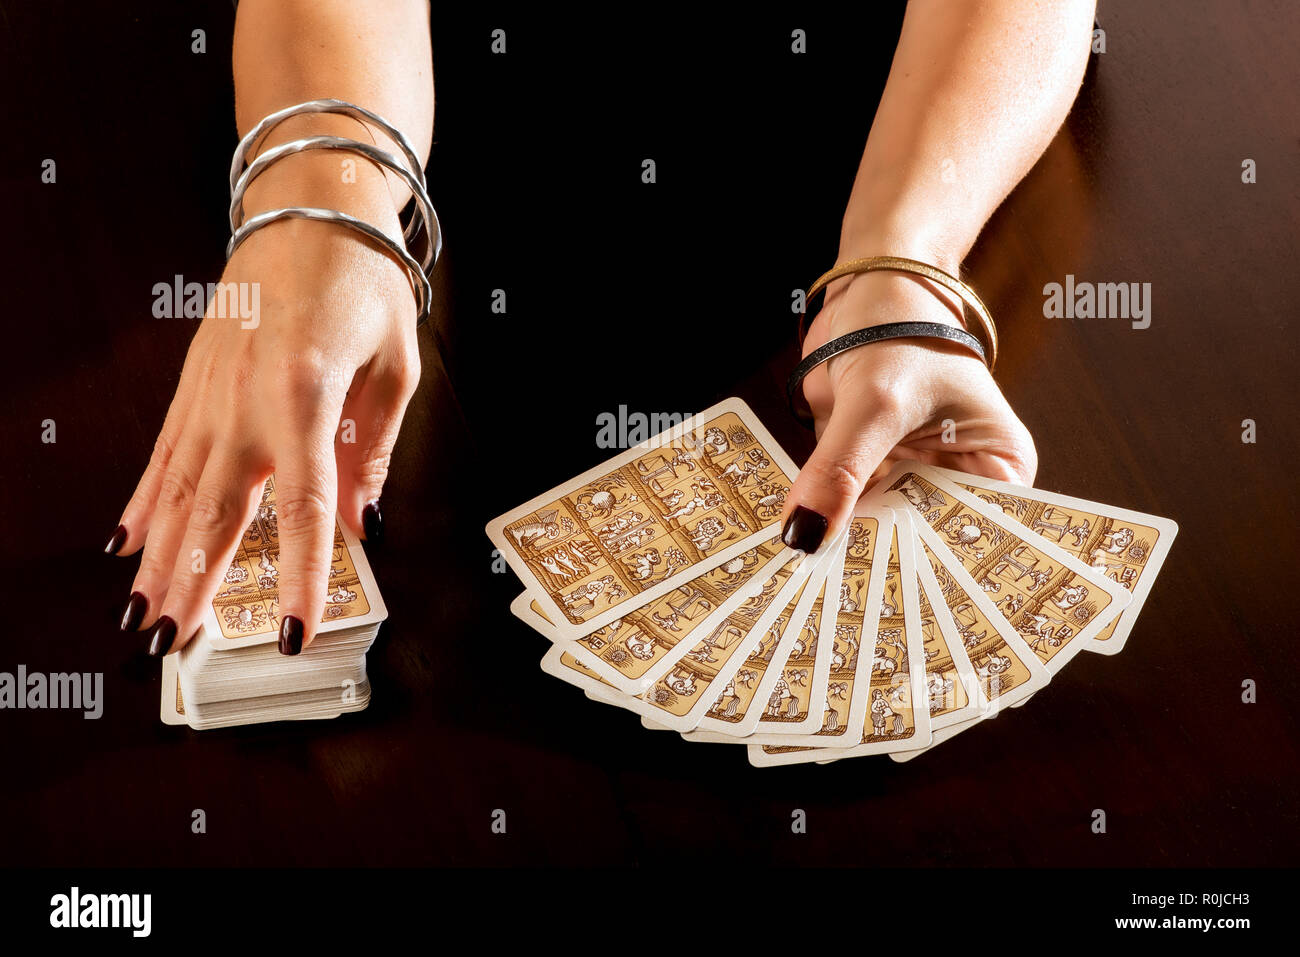 Fortune teller predicting the future with Tarot Cards holding them fanned out in her hand as she deals from a full deck in a close up on her hands - Stock Image